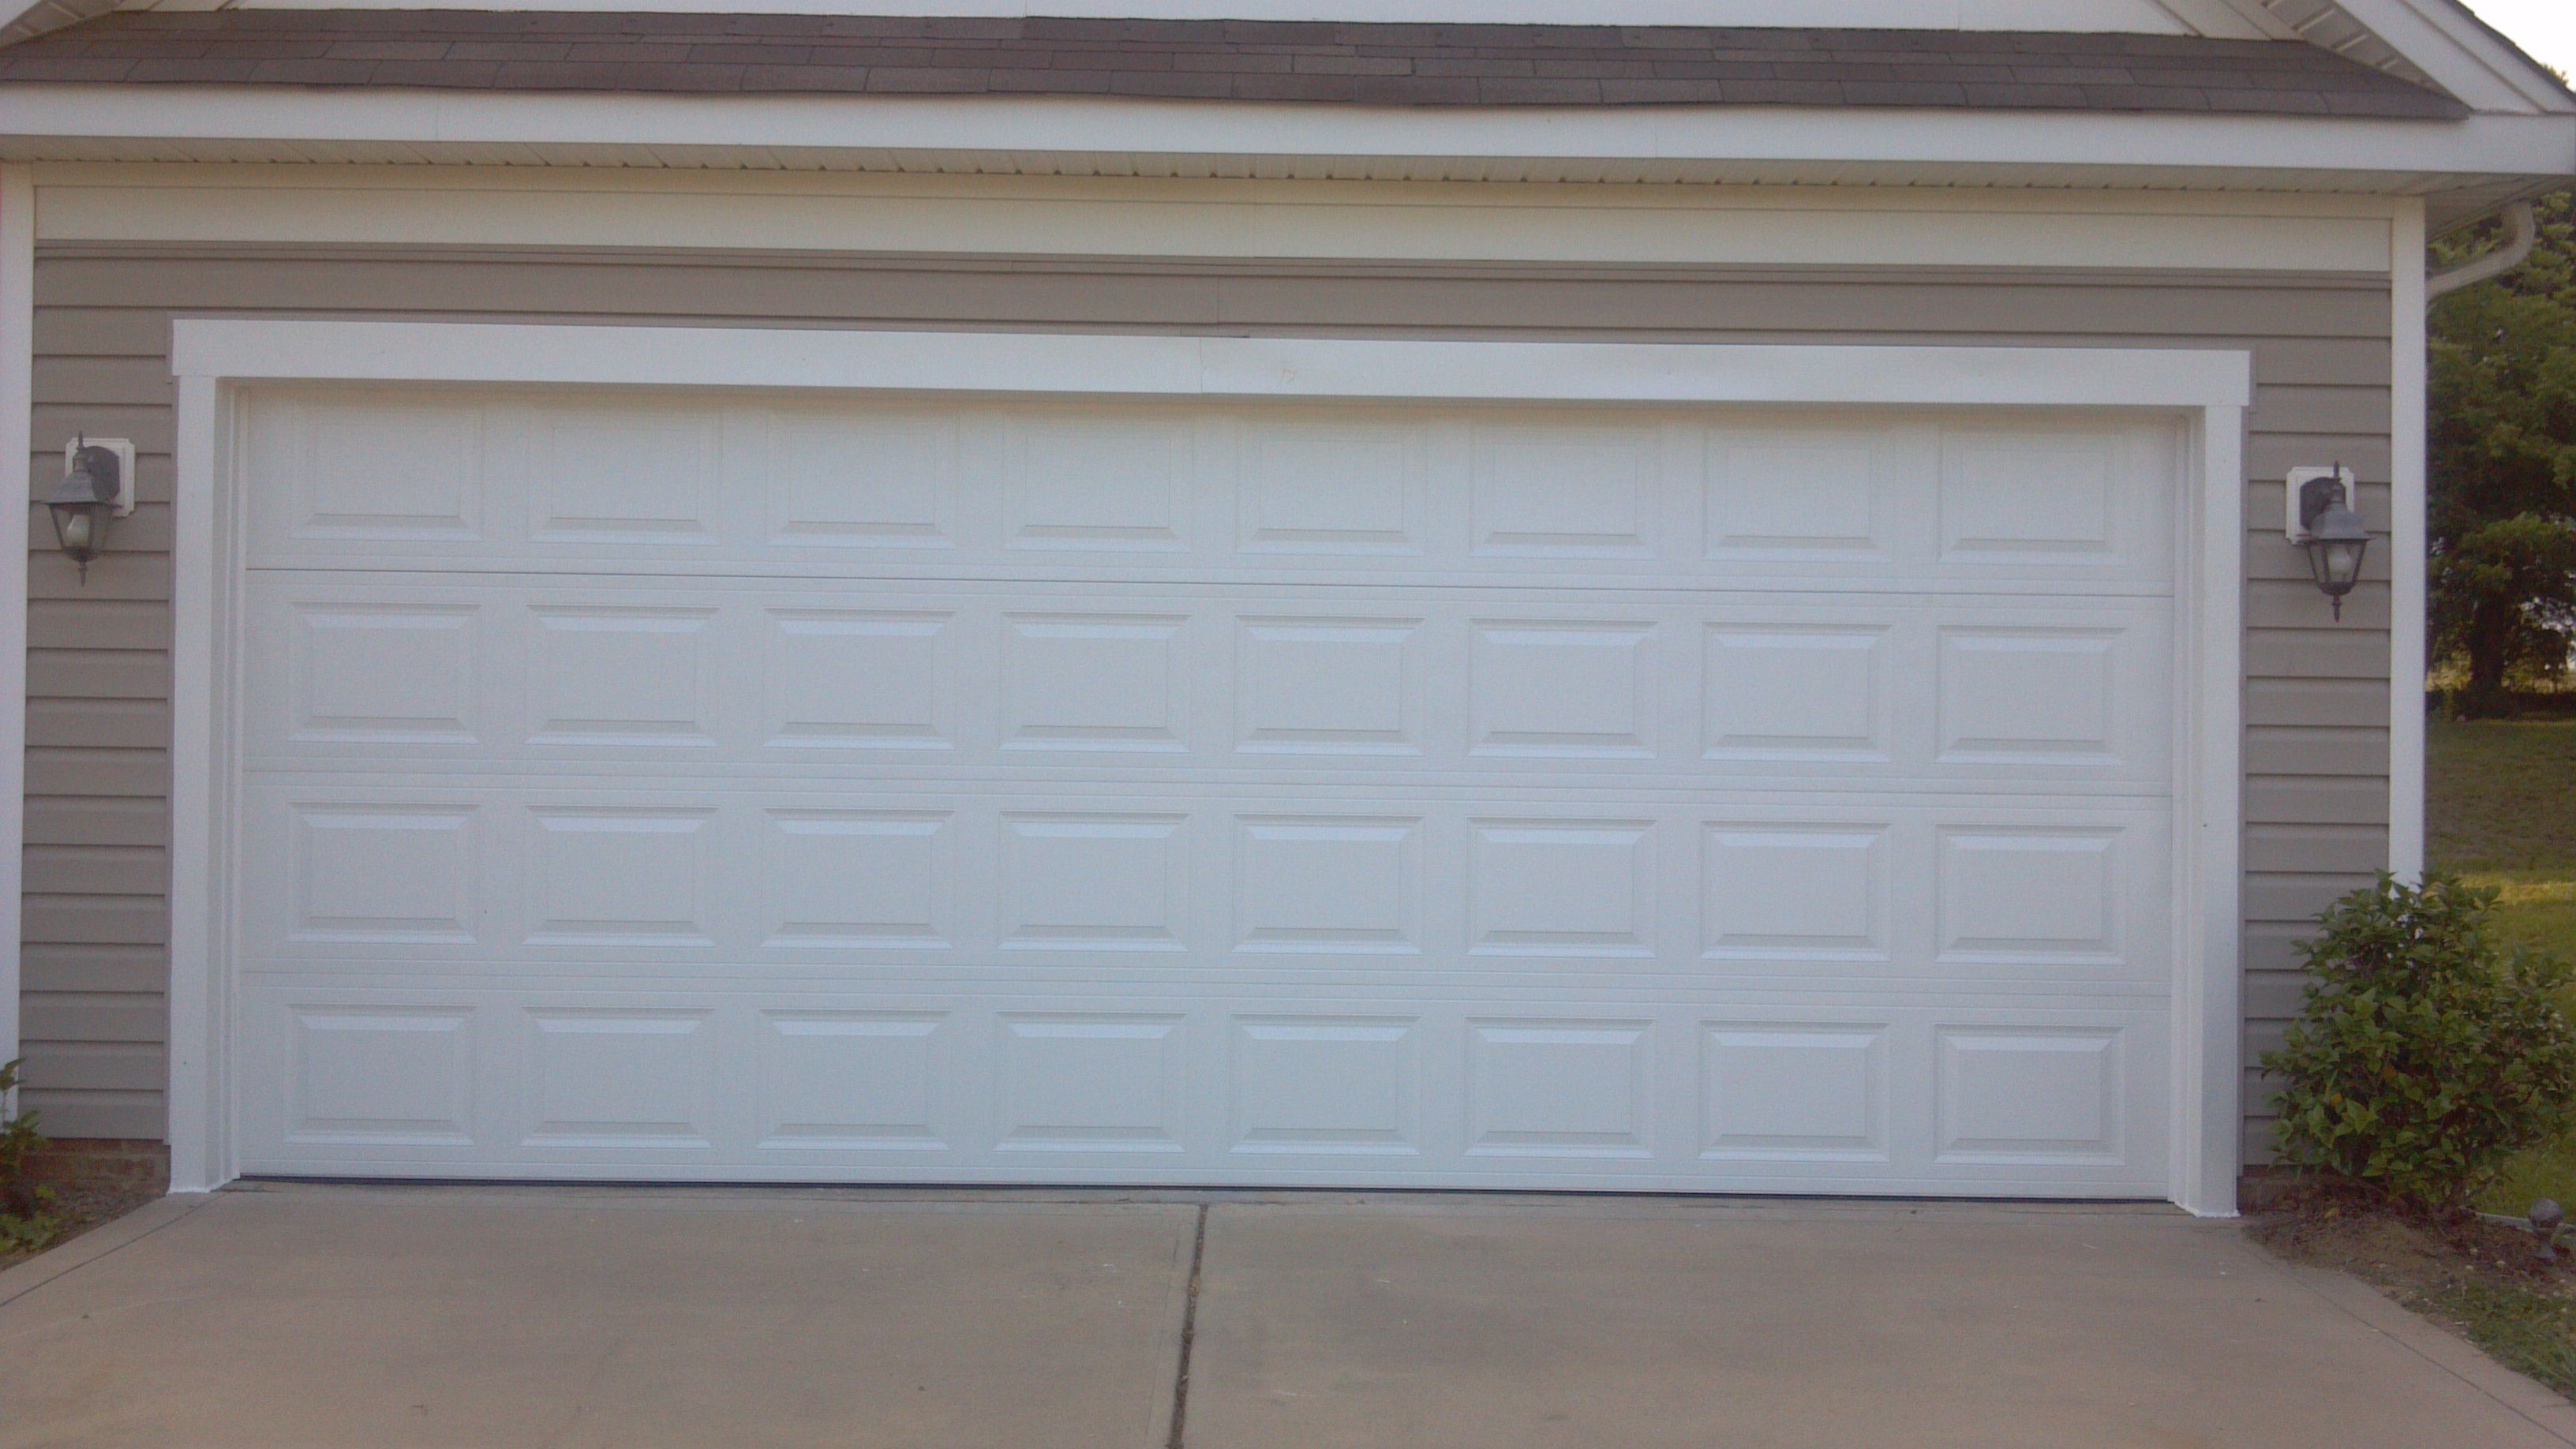 Local garage door repair installation business providing garage local garage door repair installation business providing garage door repair openers torsion rubansaba